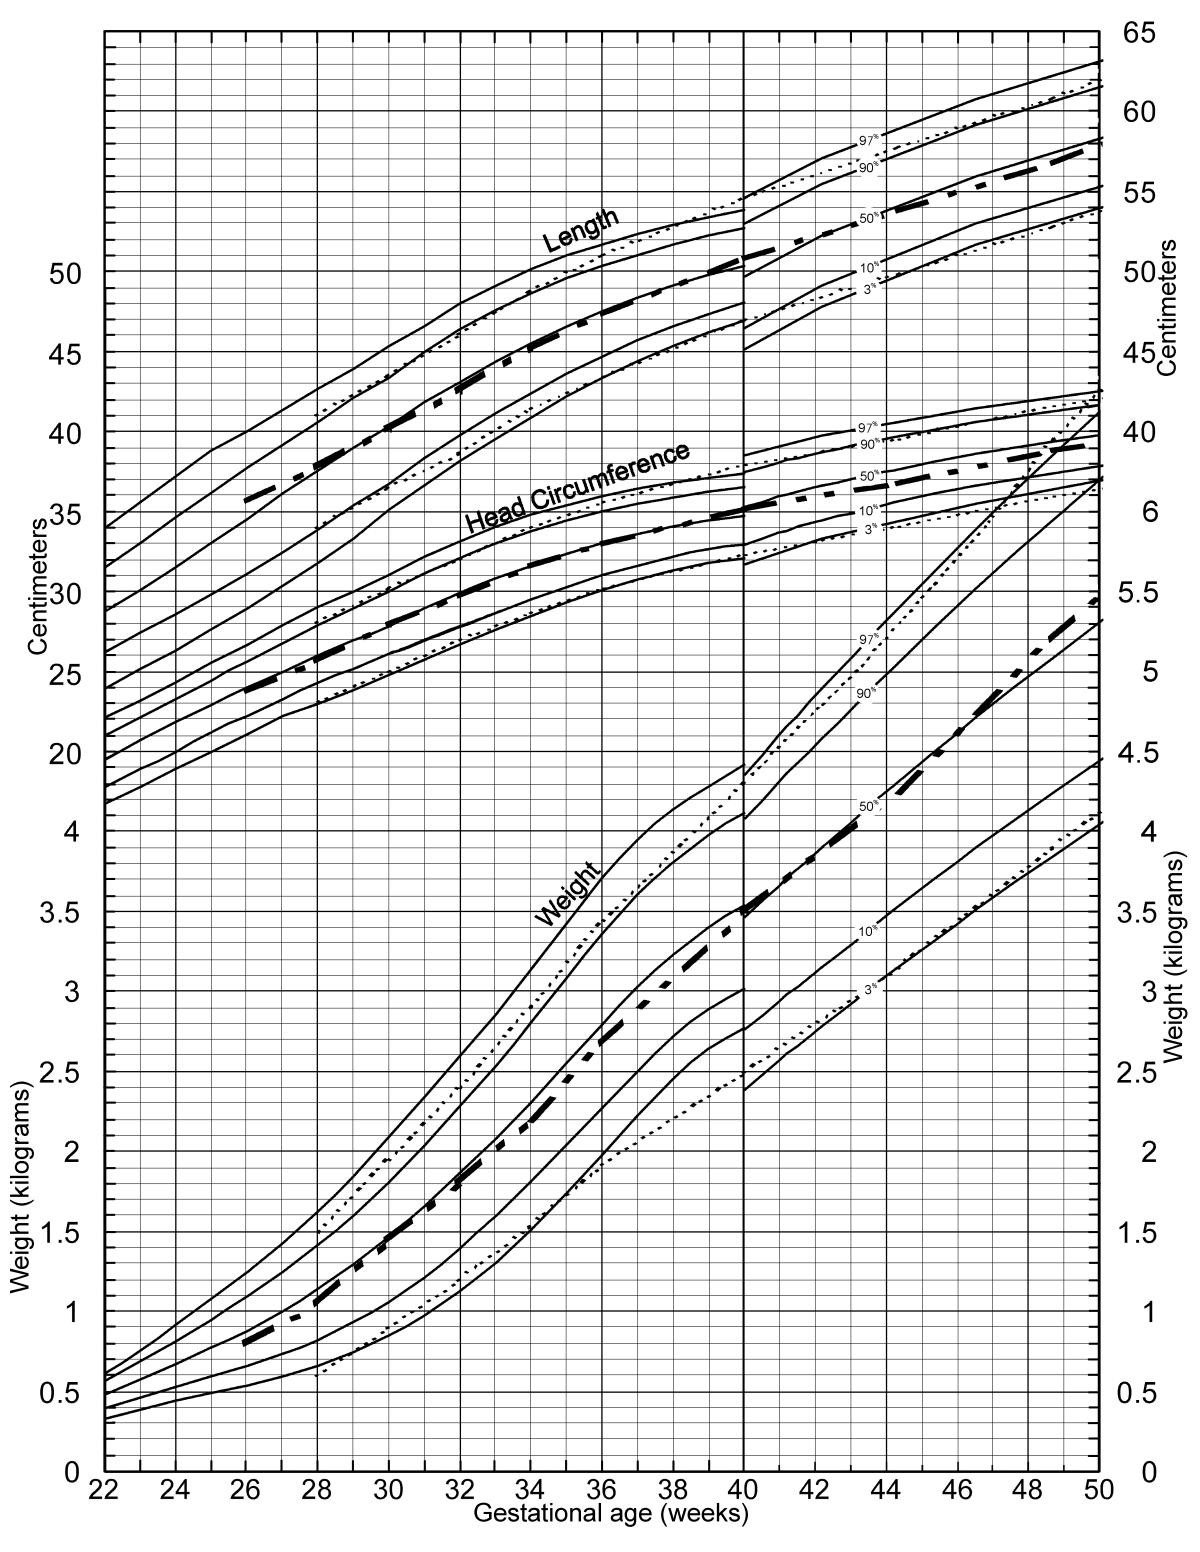 A new growth chart for preterm babies babson and bendas chart figure 3 geenschuldenfo Choice Image